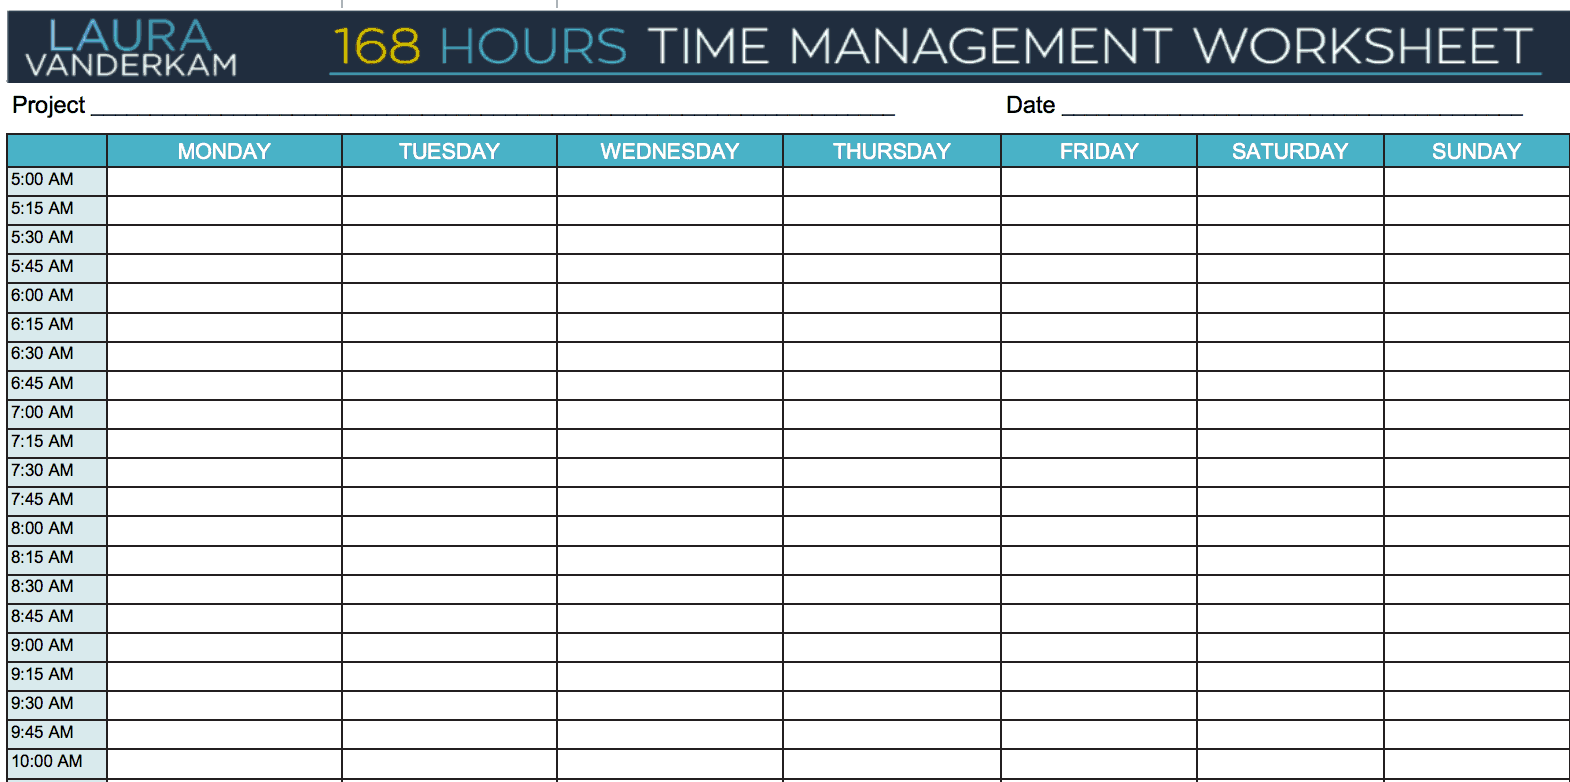 24 Hour Time Management Worksheet